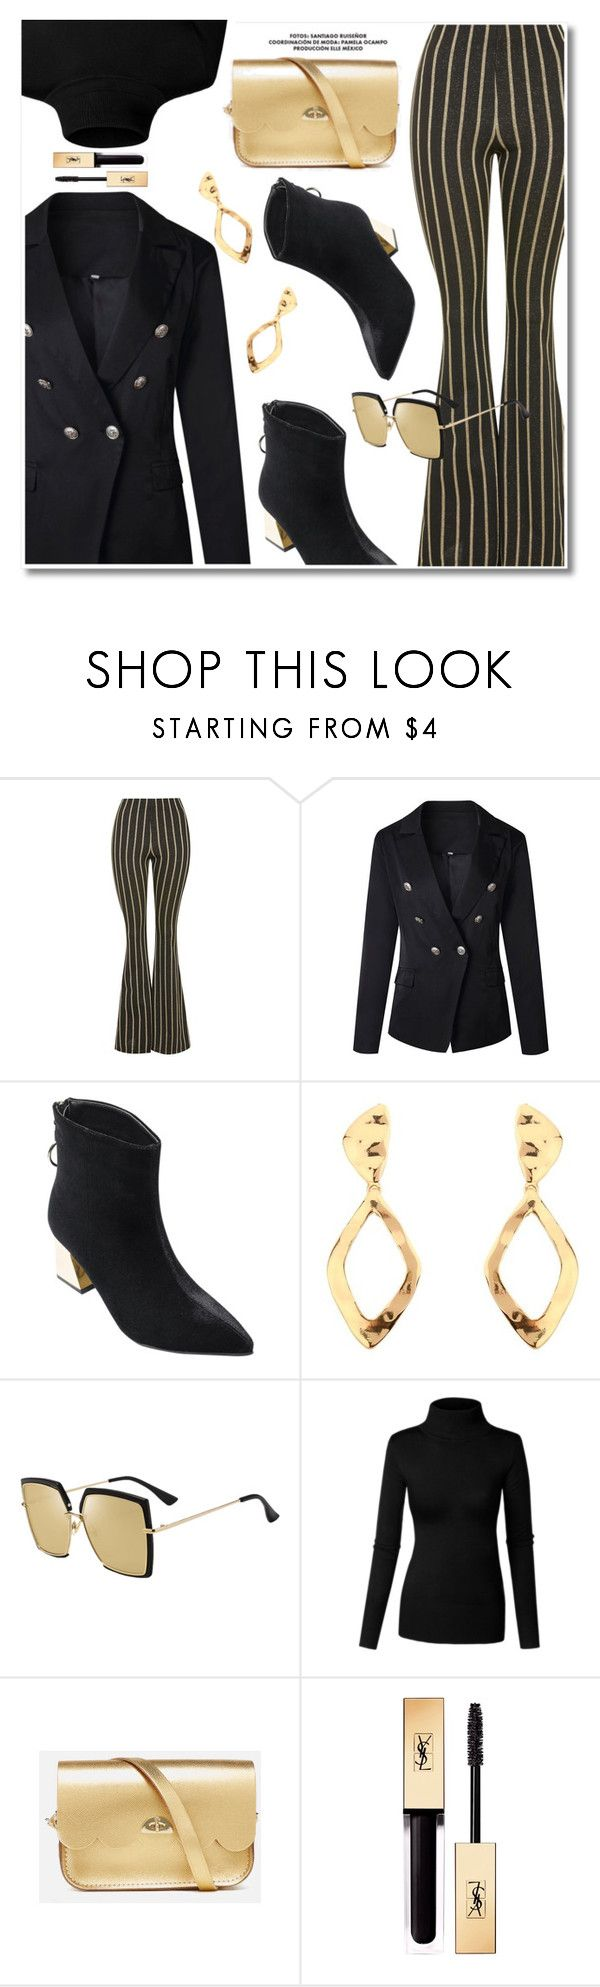 """""""Gold and black"""" by paculi ❤ liked on Polyvore featuring The Cambridge Satchel Company and Yves Saint Laurent"""